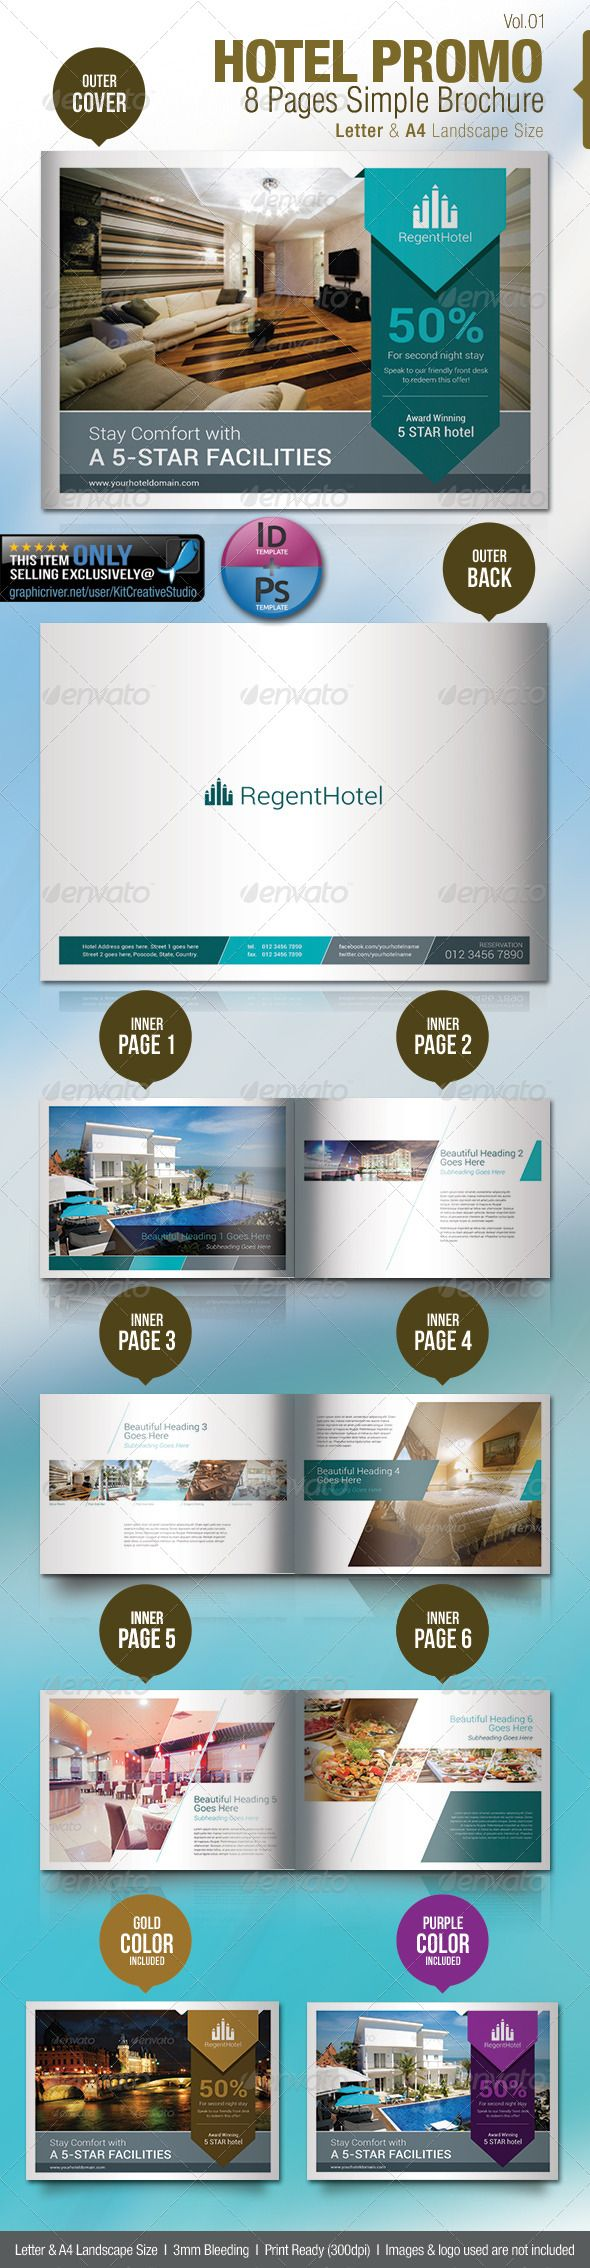 Hotel Promo  Pages Simple Brochure  Print Templates Brochures